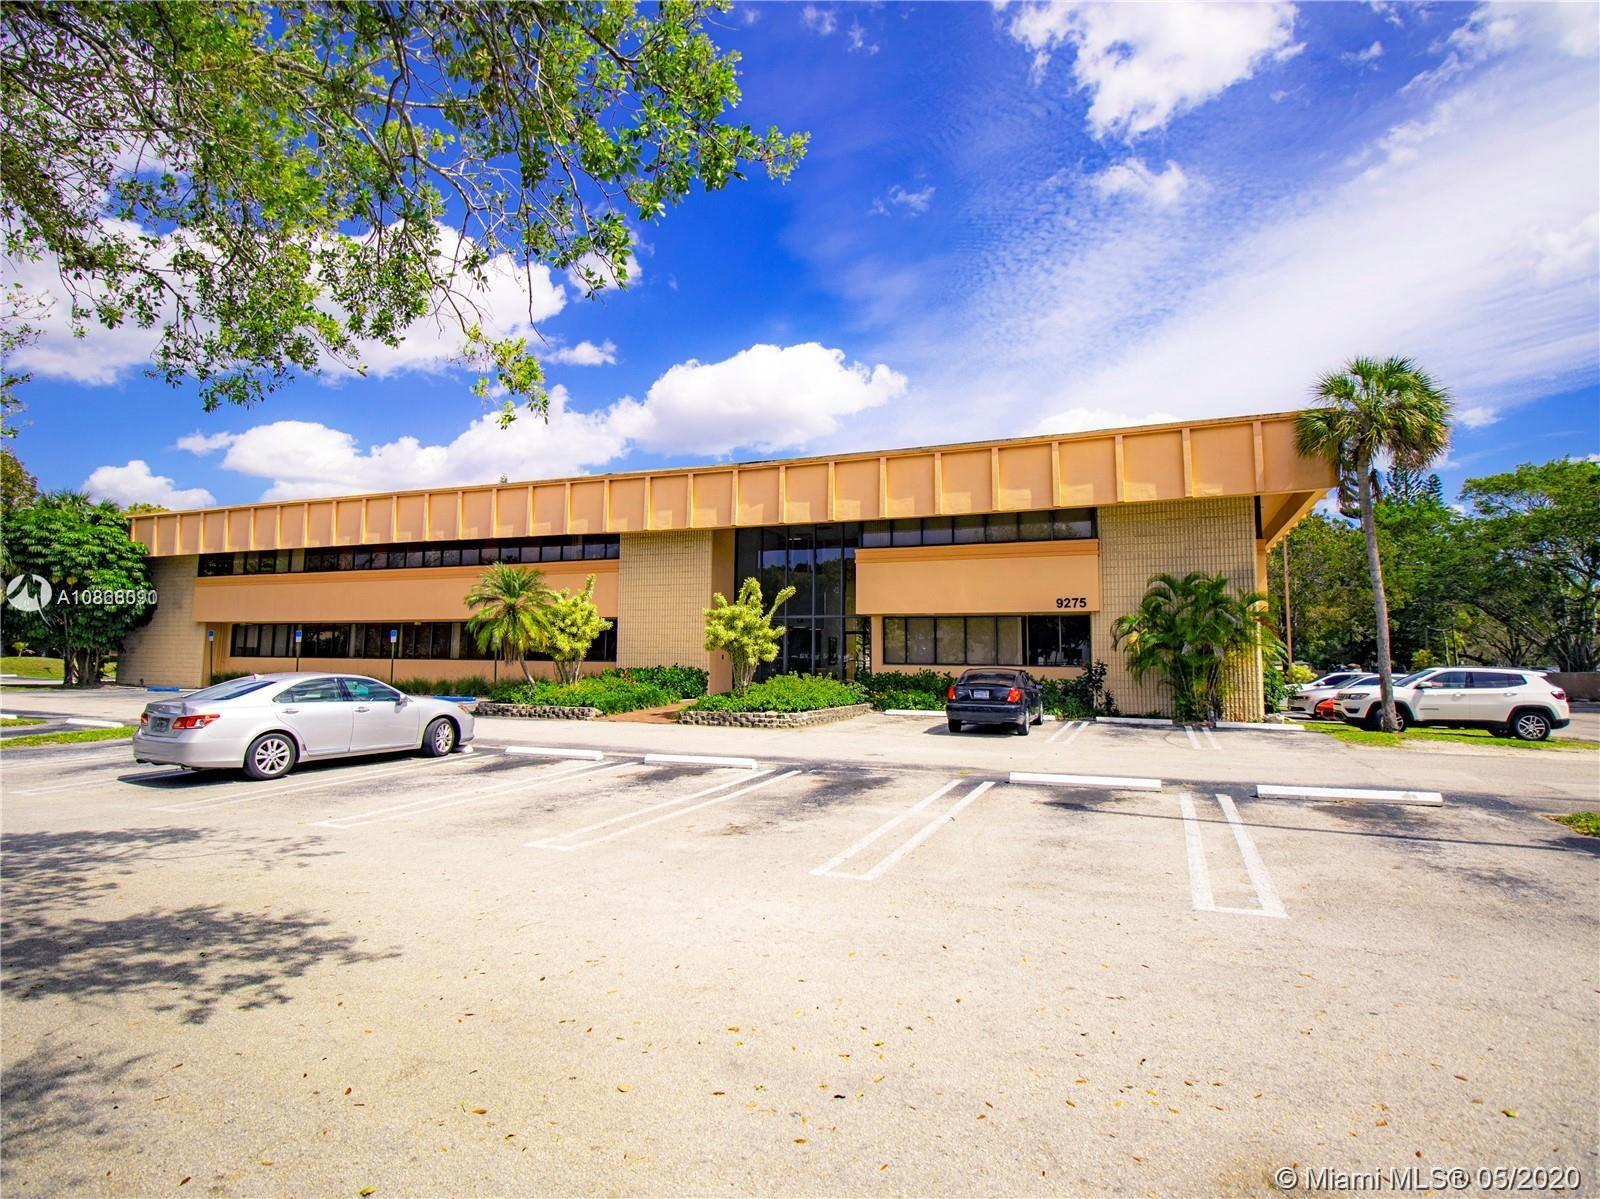 9275 SW 152nd St #200 For Sale A10866090, FL